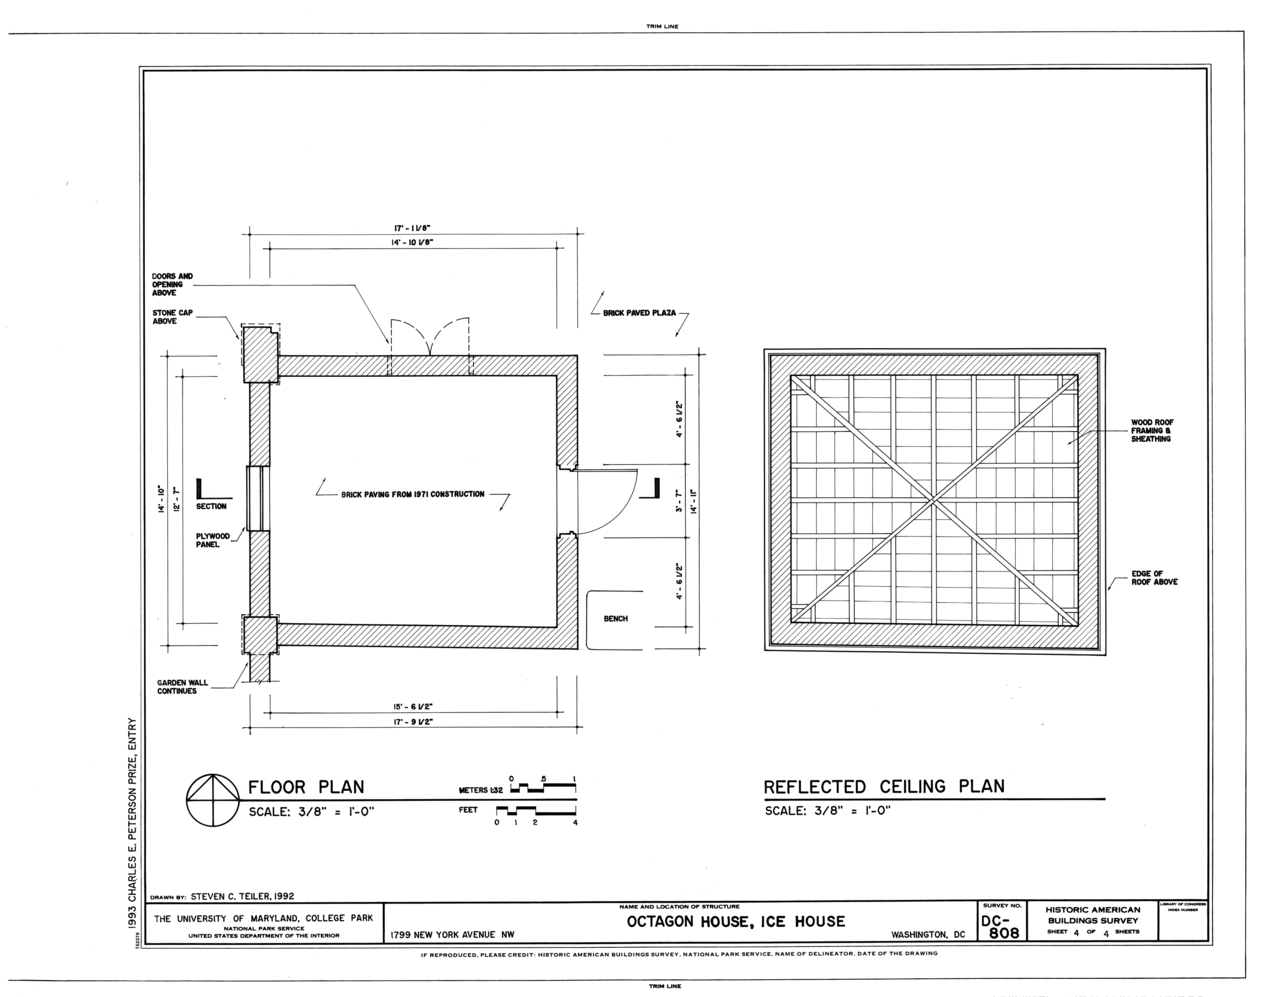 File floor plan and reflection ceiling plan octagon for Floor sheet for office